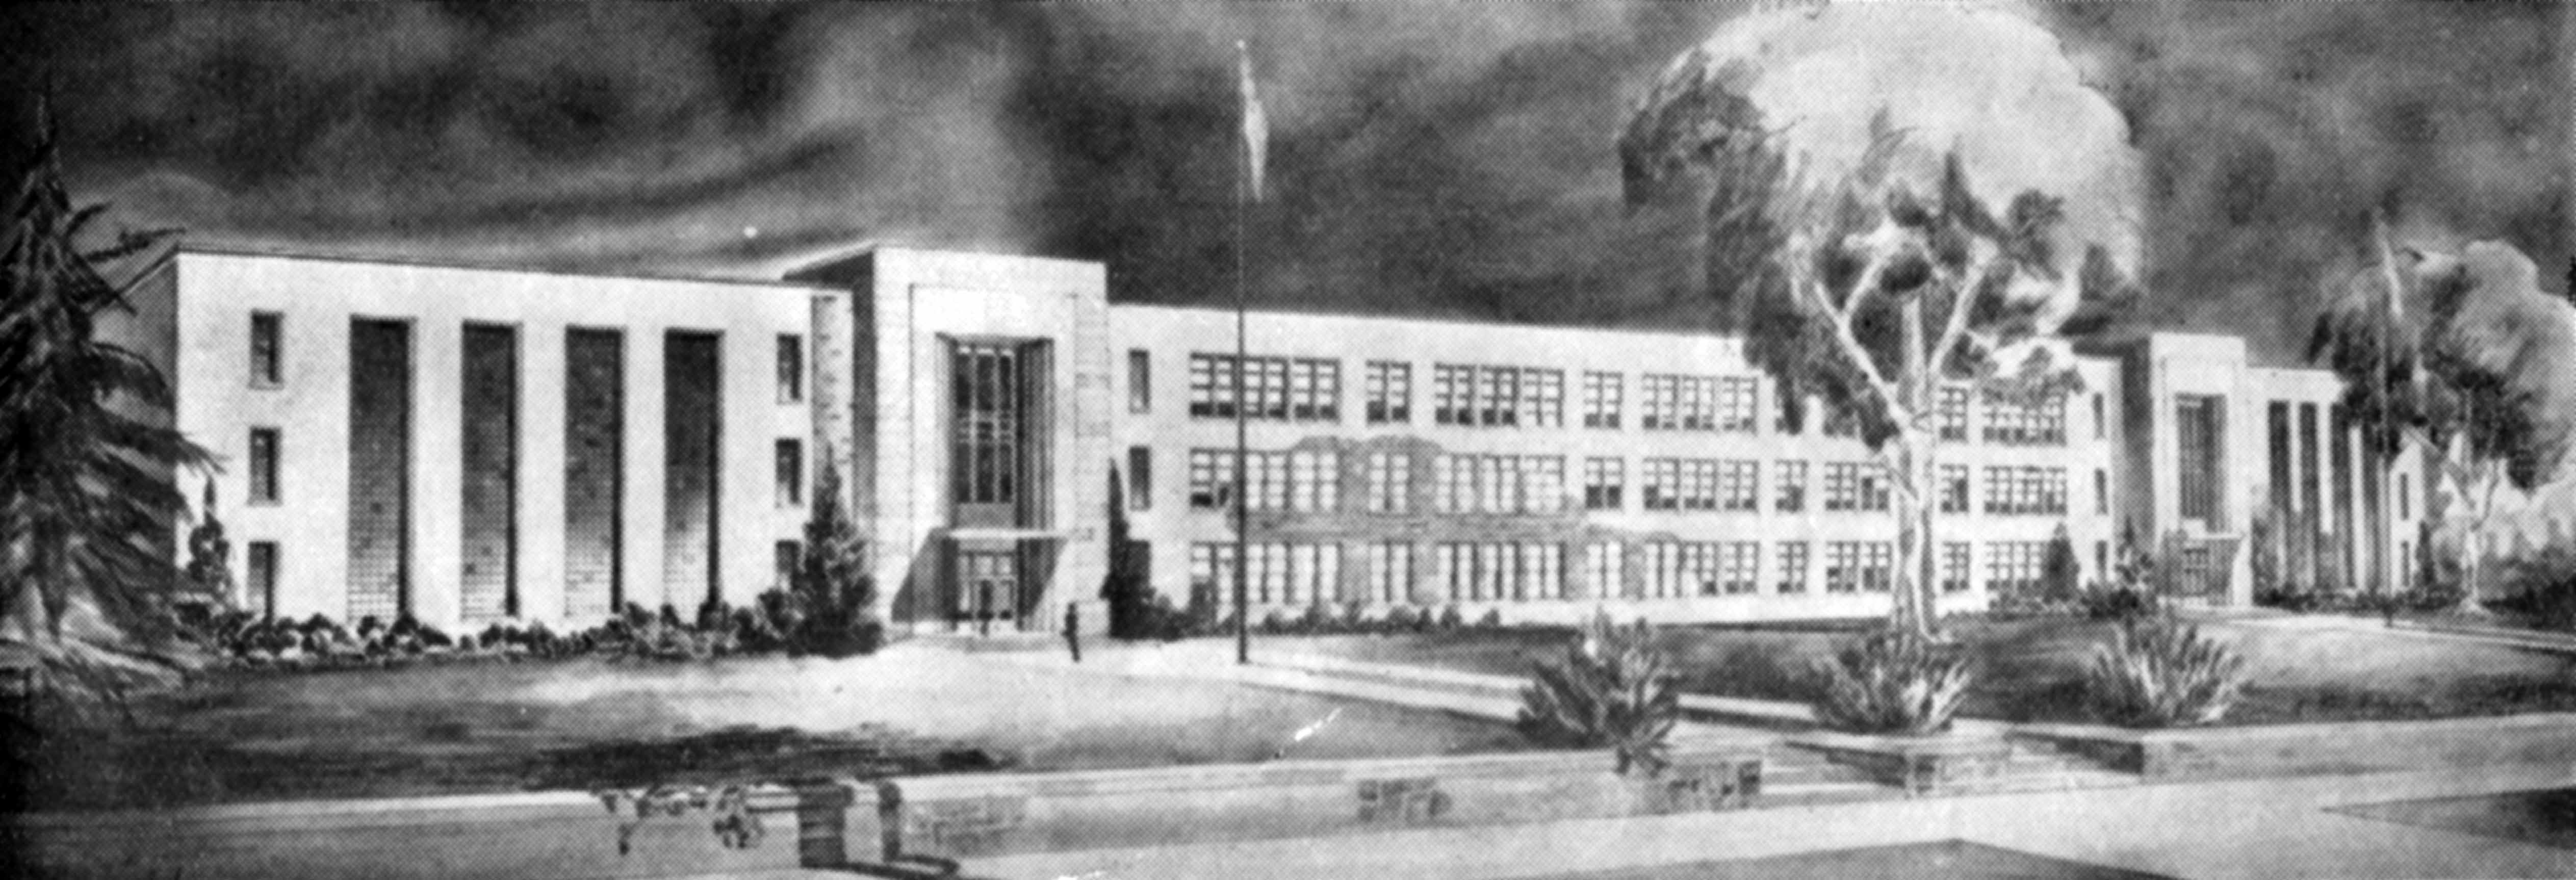 Architect's rendering of Stewart Hall, early 1940s